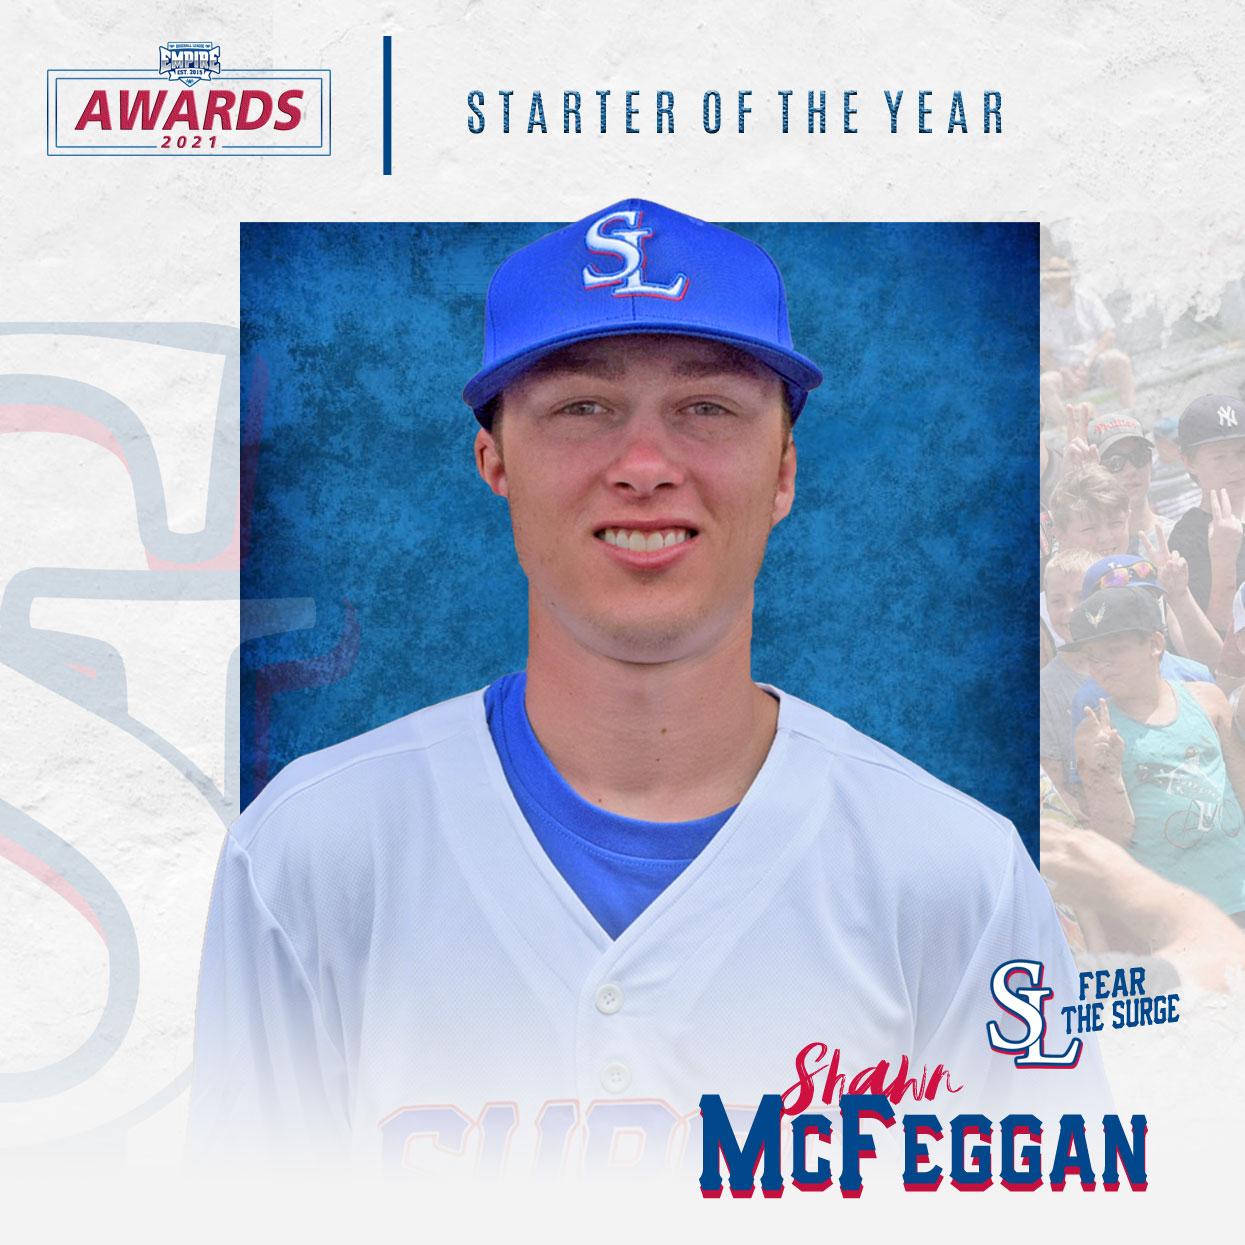 Awards-Starter-of-the-Year2